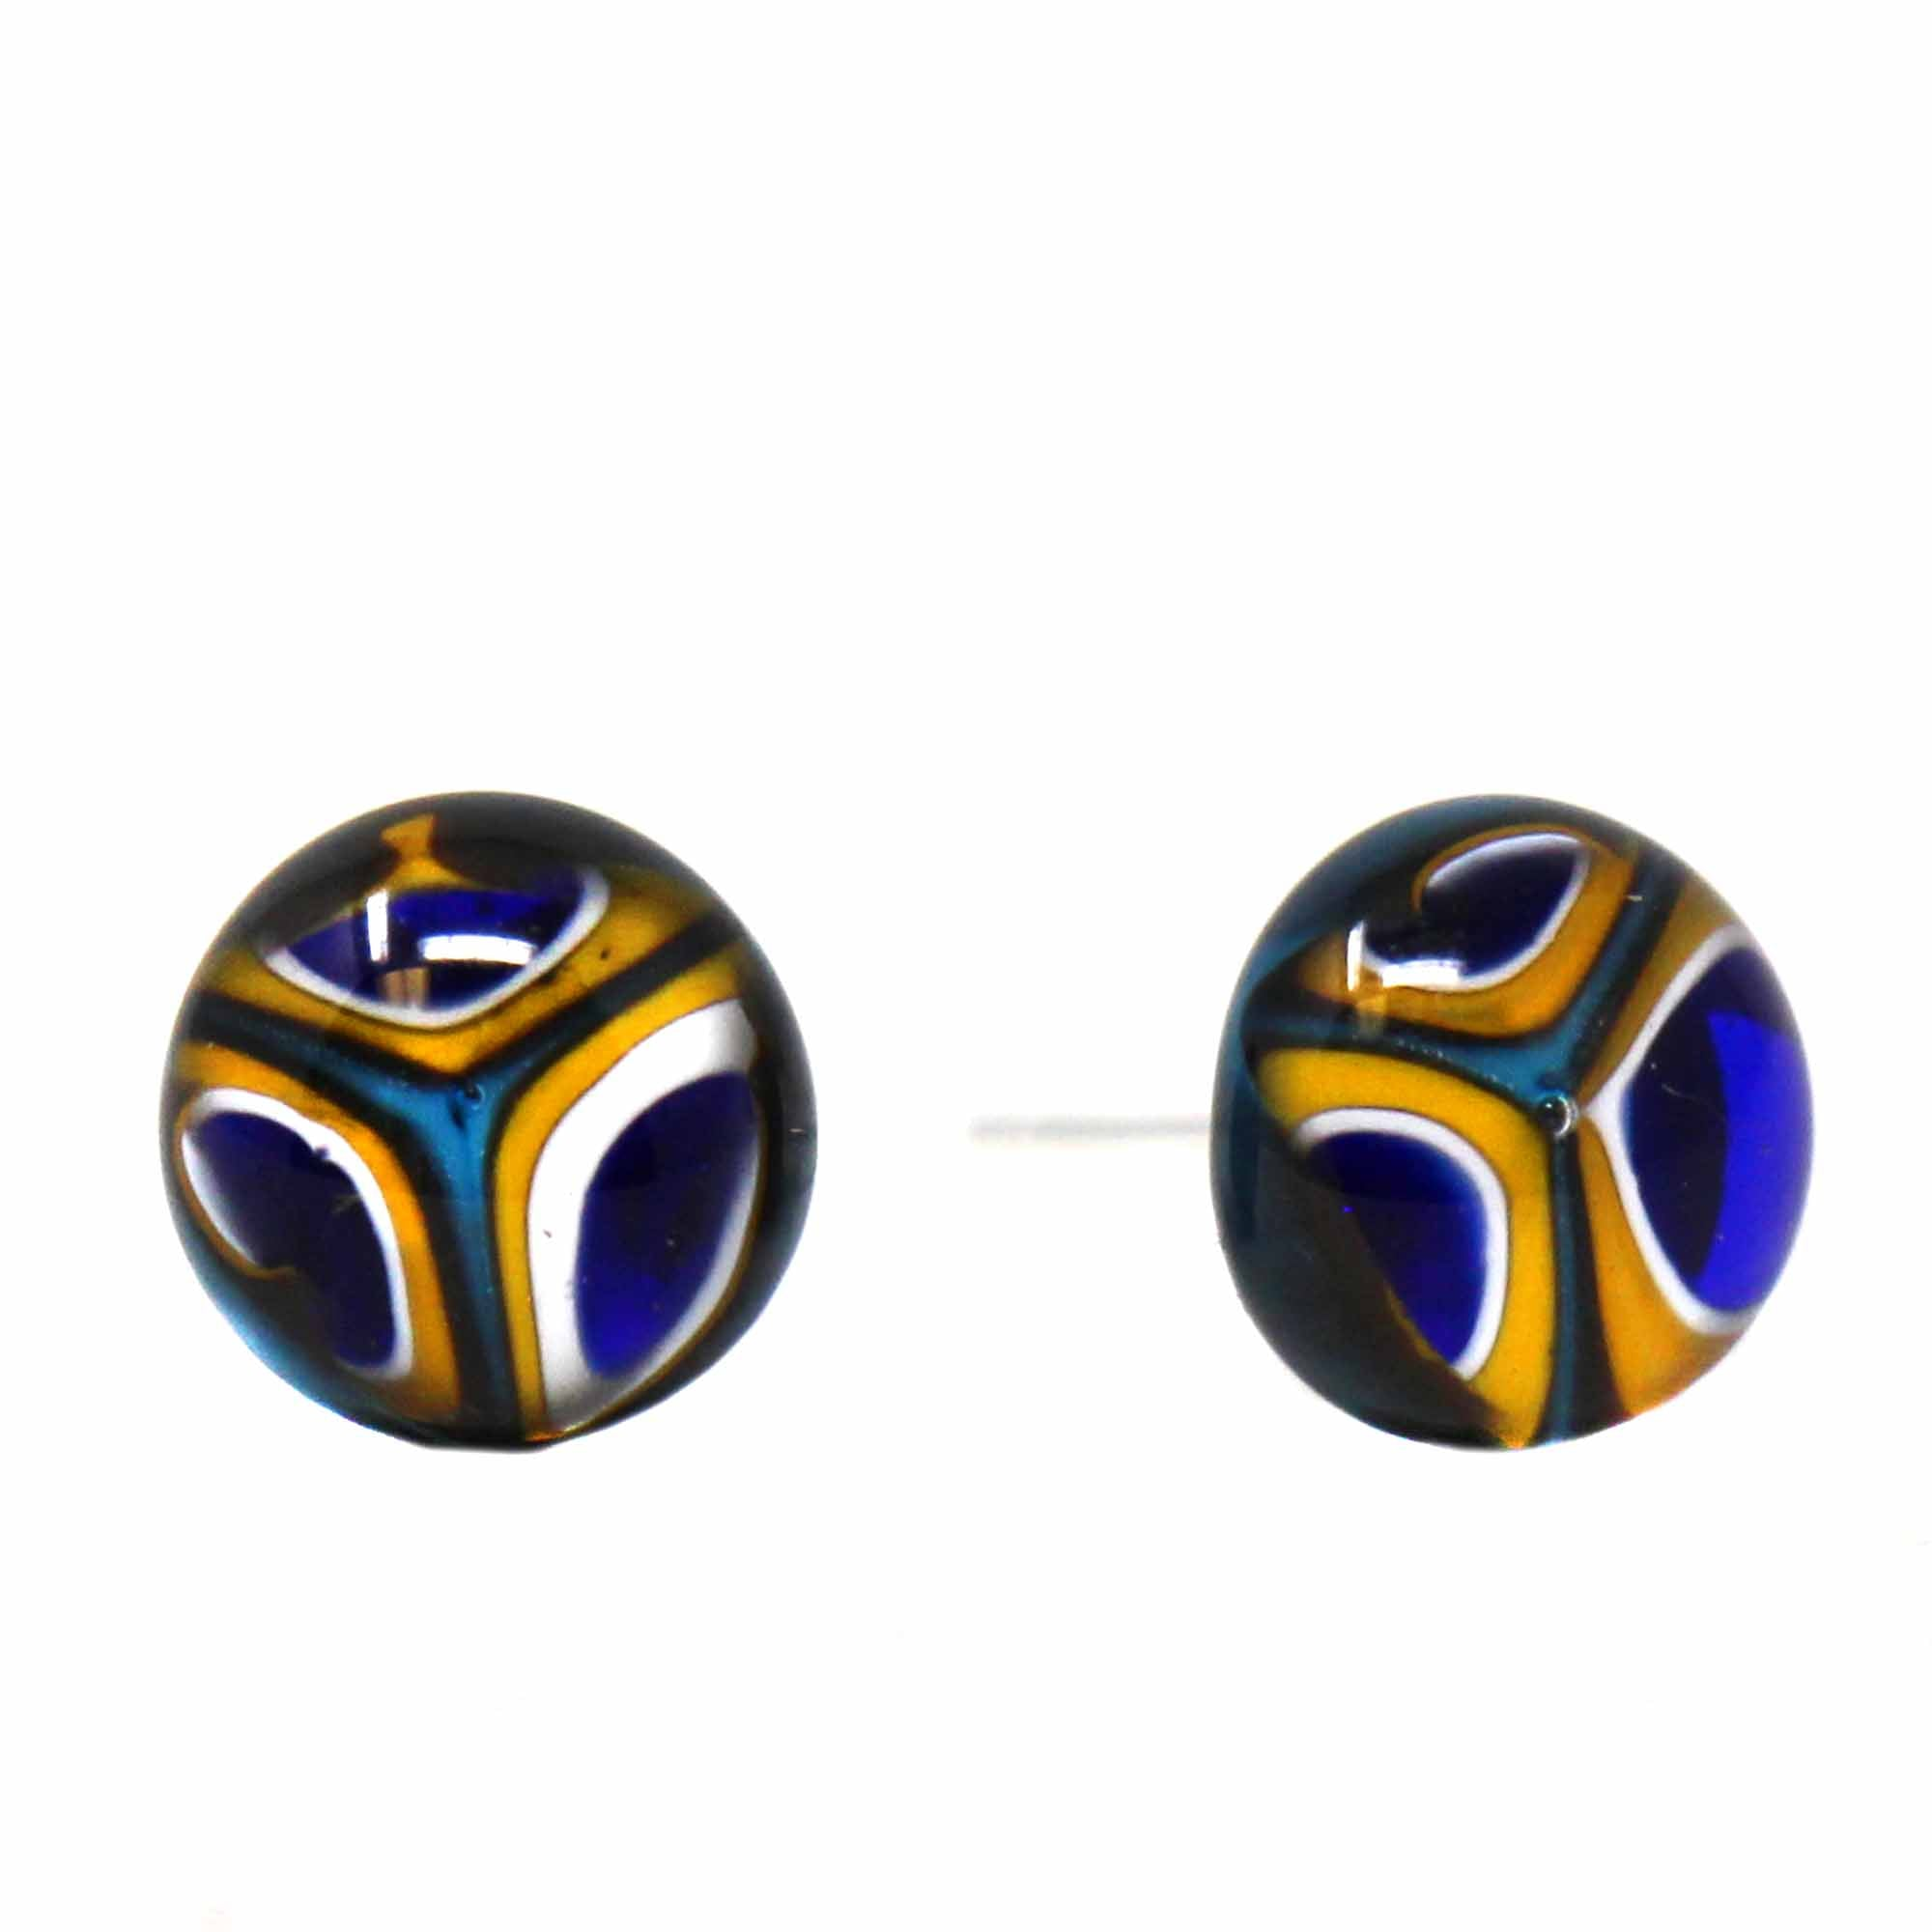 Small Glass Stud Earrings - Blue and Yellow Kaleidoscope